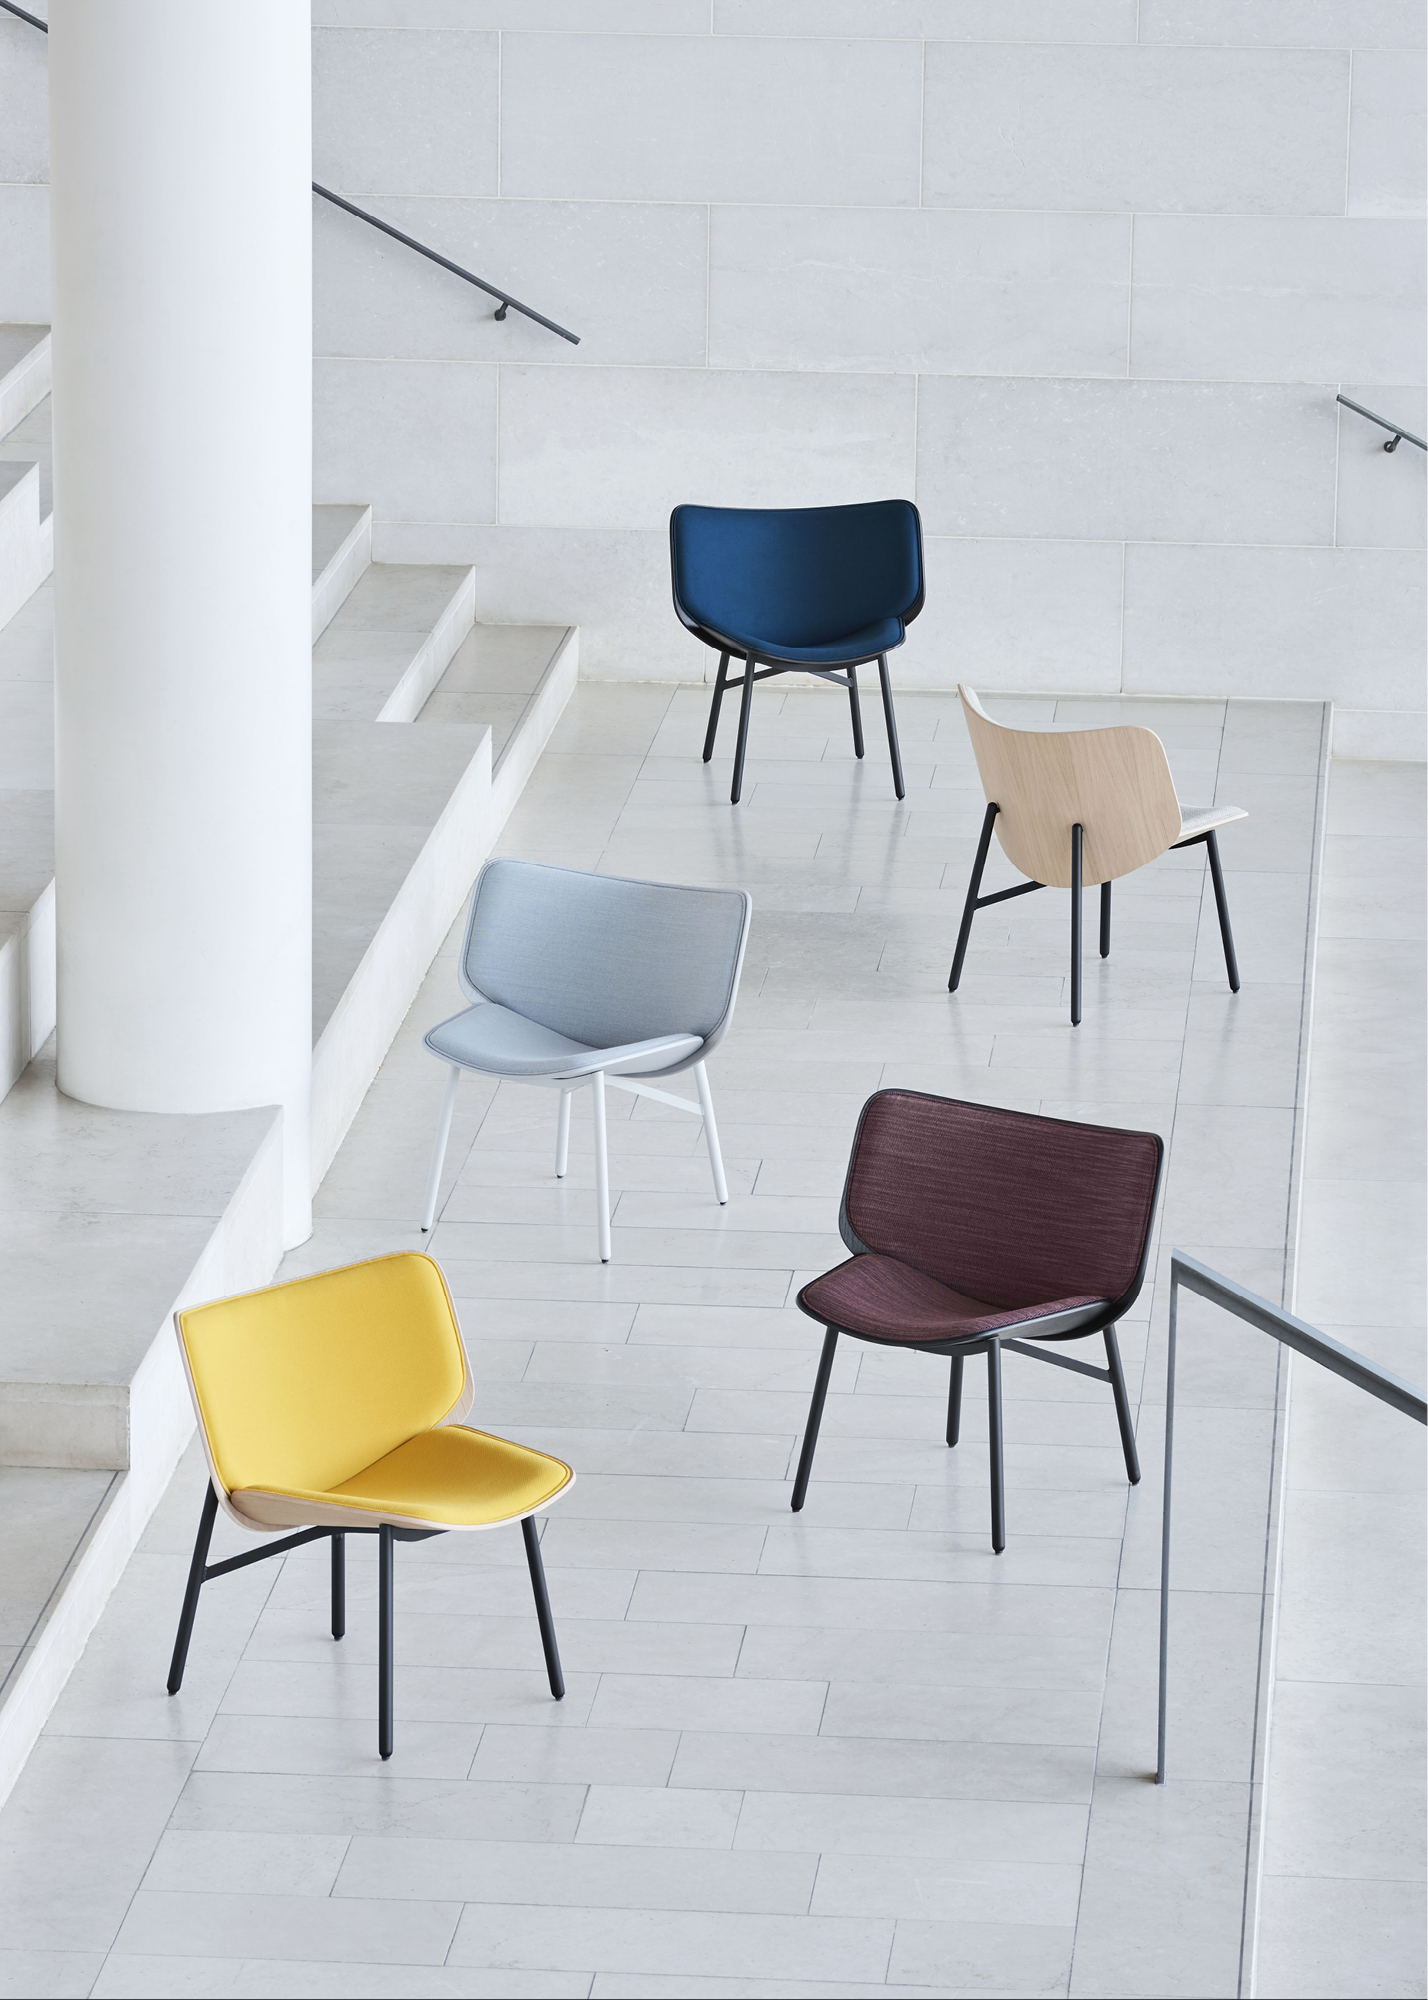 Dapper lounge chairs by HAY in the Shoreditch design district